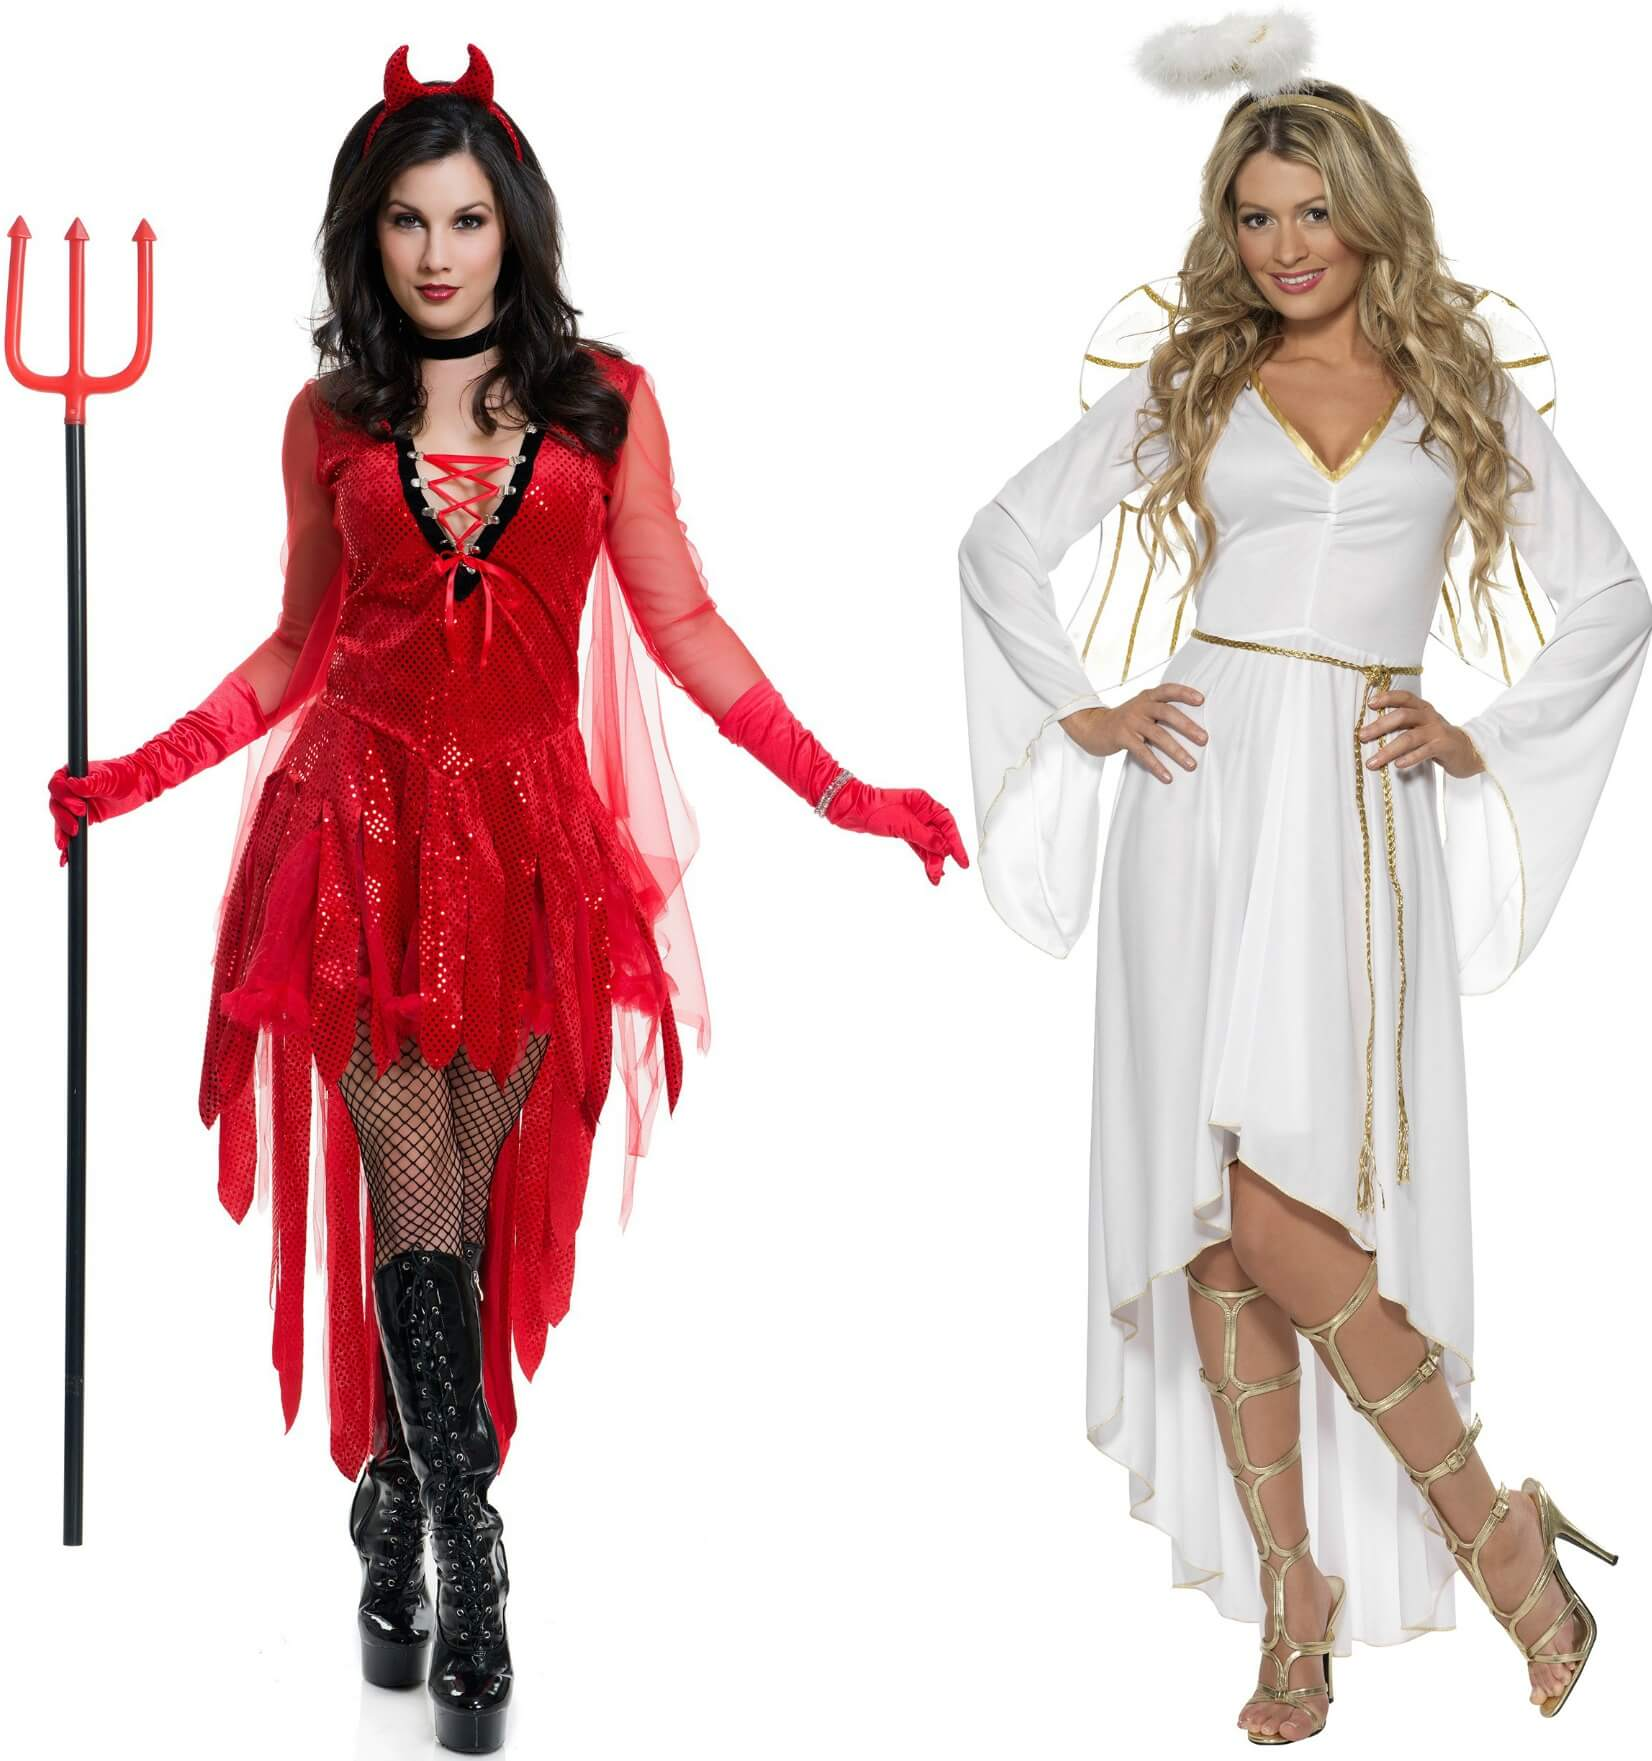 Costume Ideas for BFFs - Halloween Costumes Blog